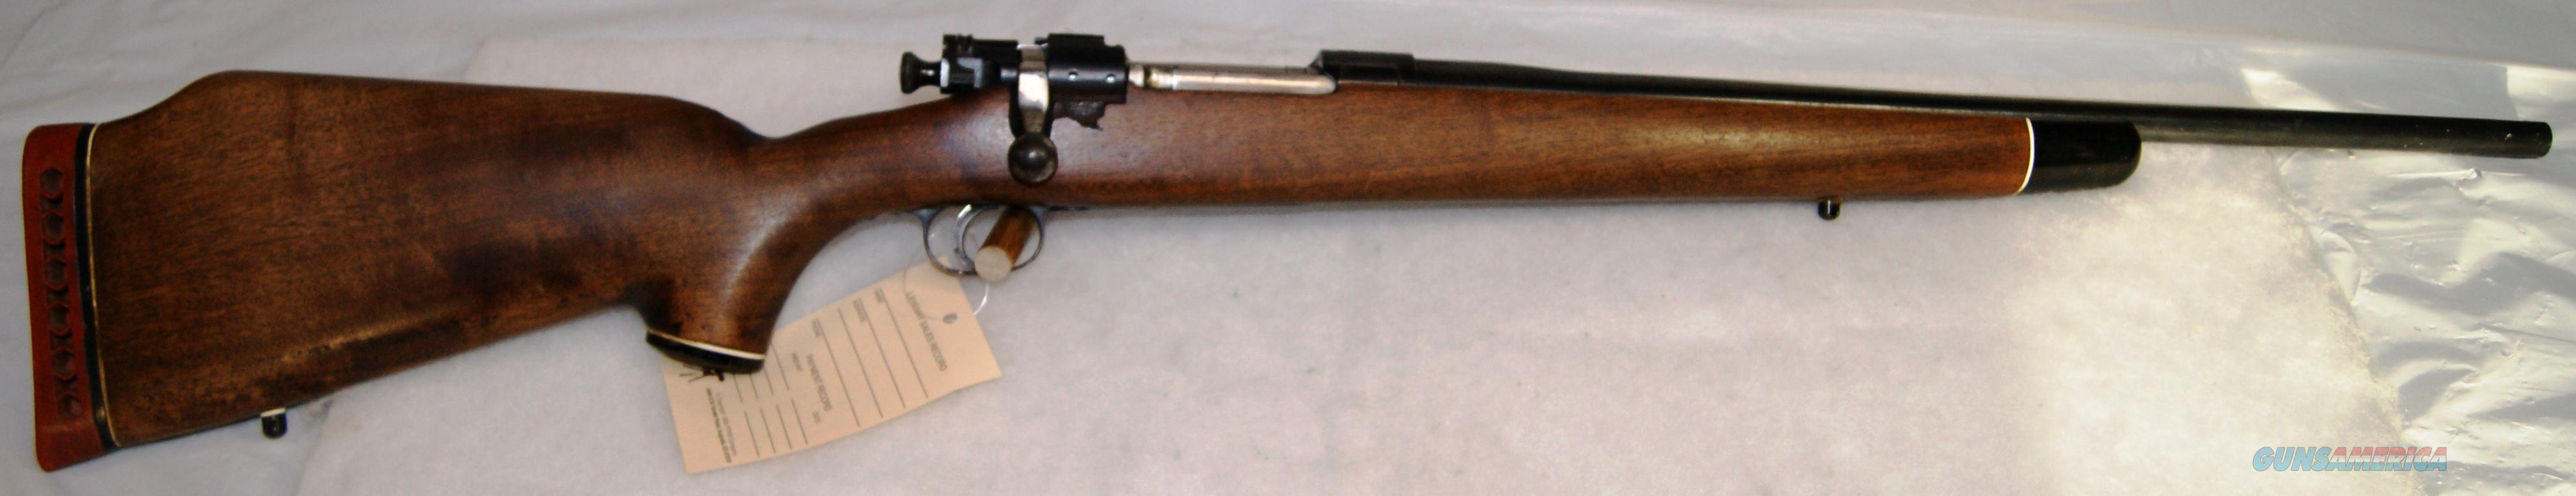 Remington 1903-A3 Sporterized Rifle In 30-06 Caliber  Guns > Rifles > Military Misc. Rifles US > 1903 Springfield/Variants